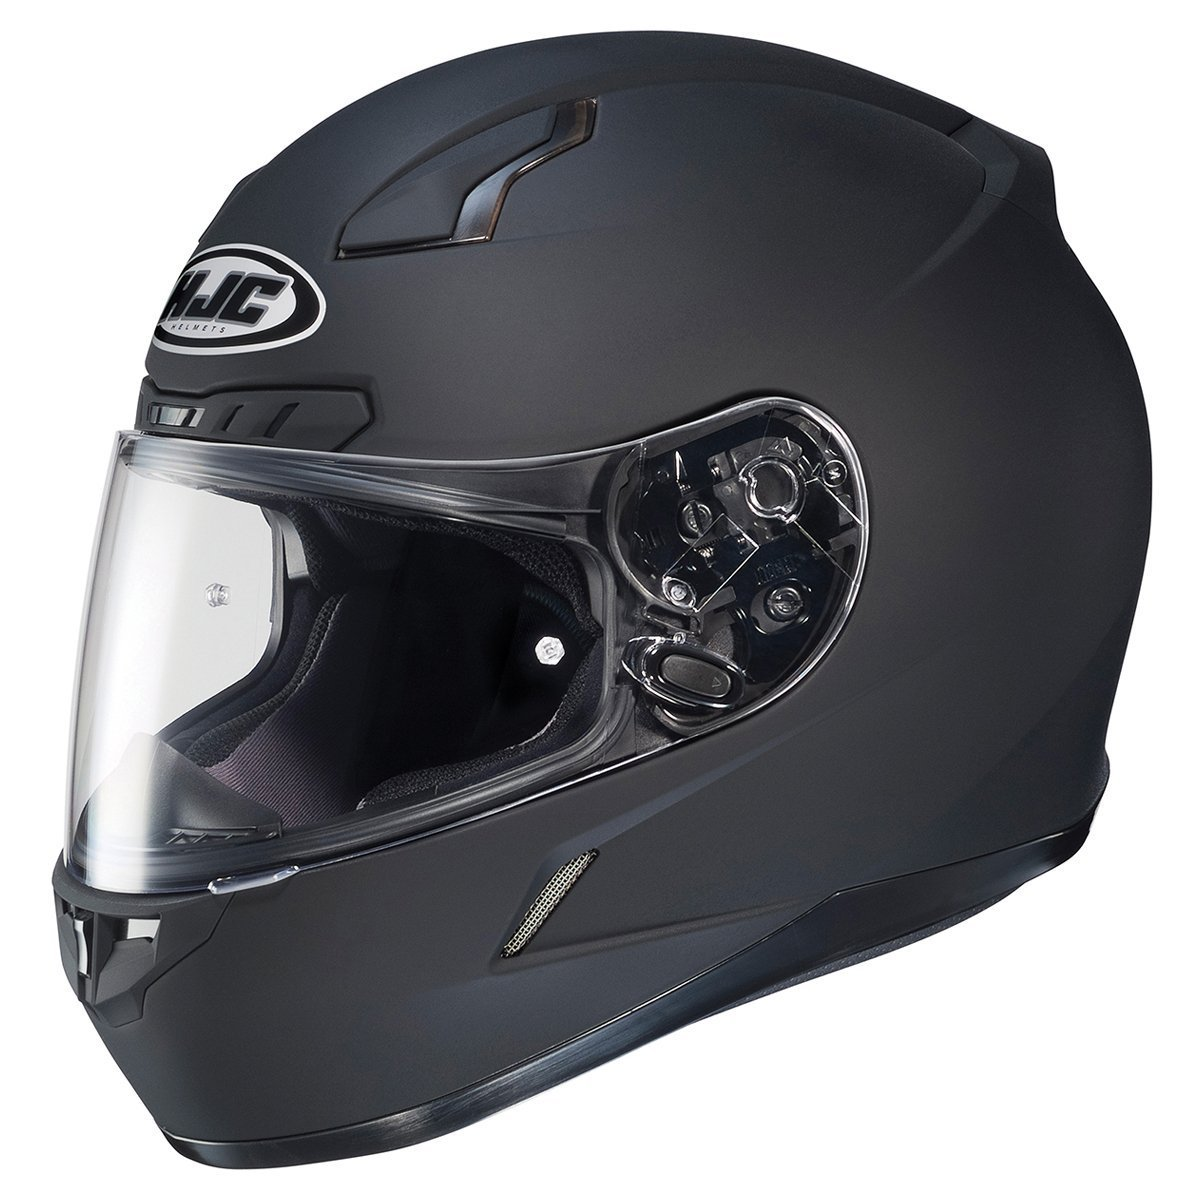 HJC 824-585 CL-17 Full-Face Motorcycle Helmet (Matte Anthracite, X-Large)